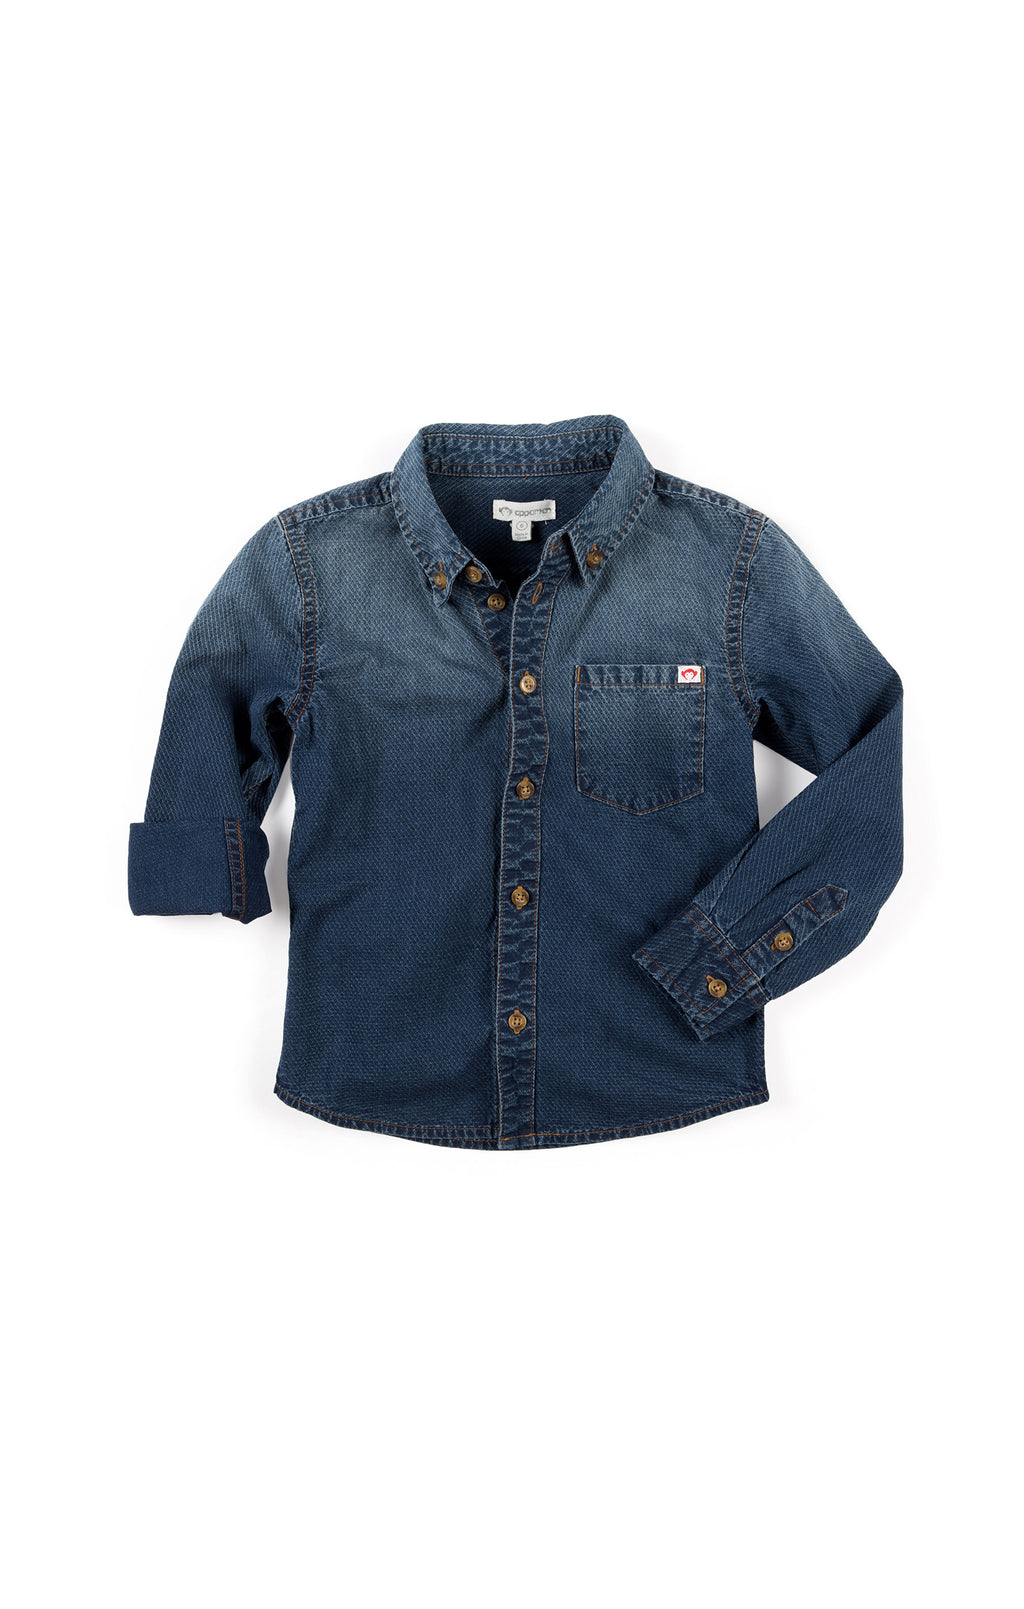 Ombre Denim Shirt | Unique Finds for Kids